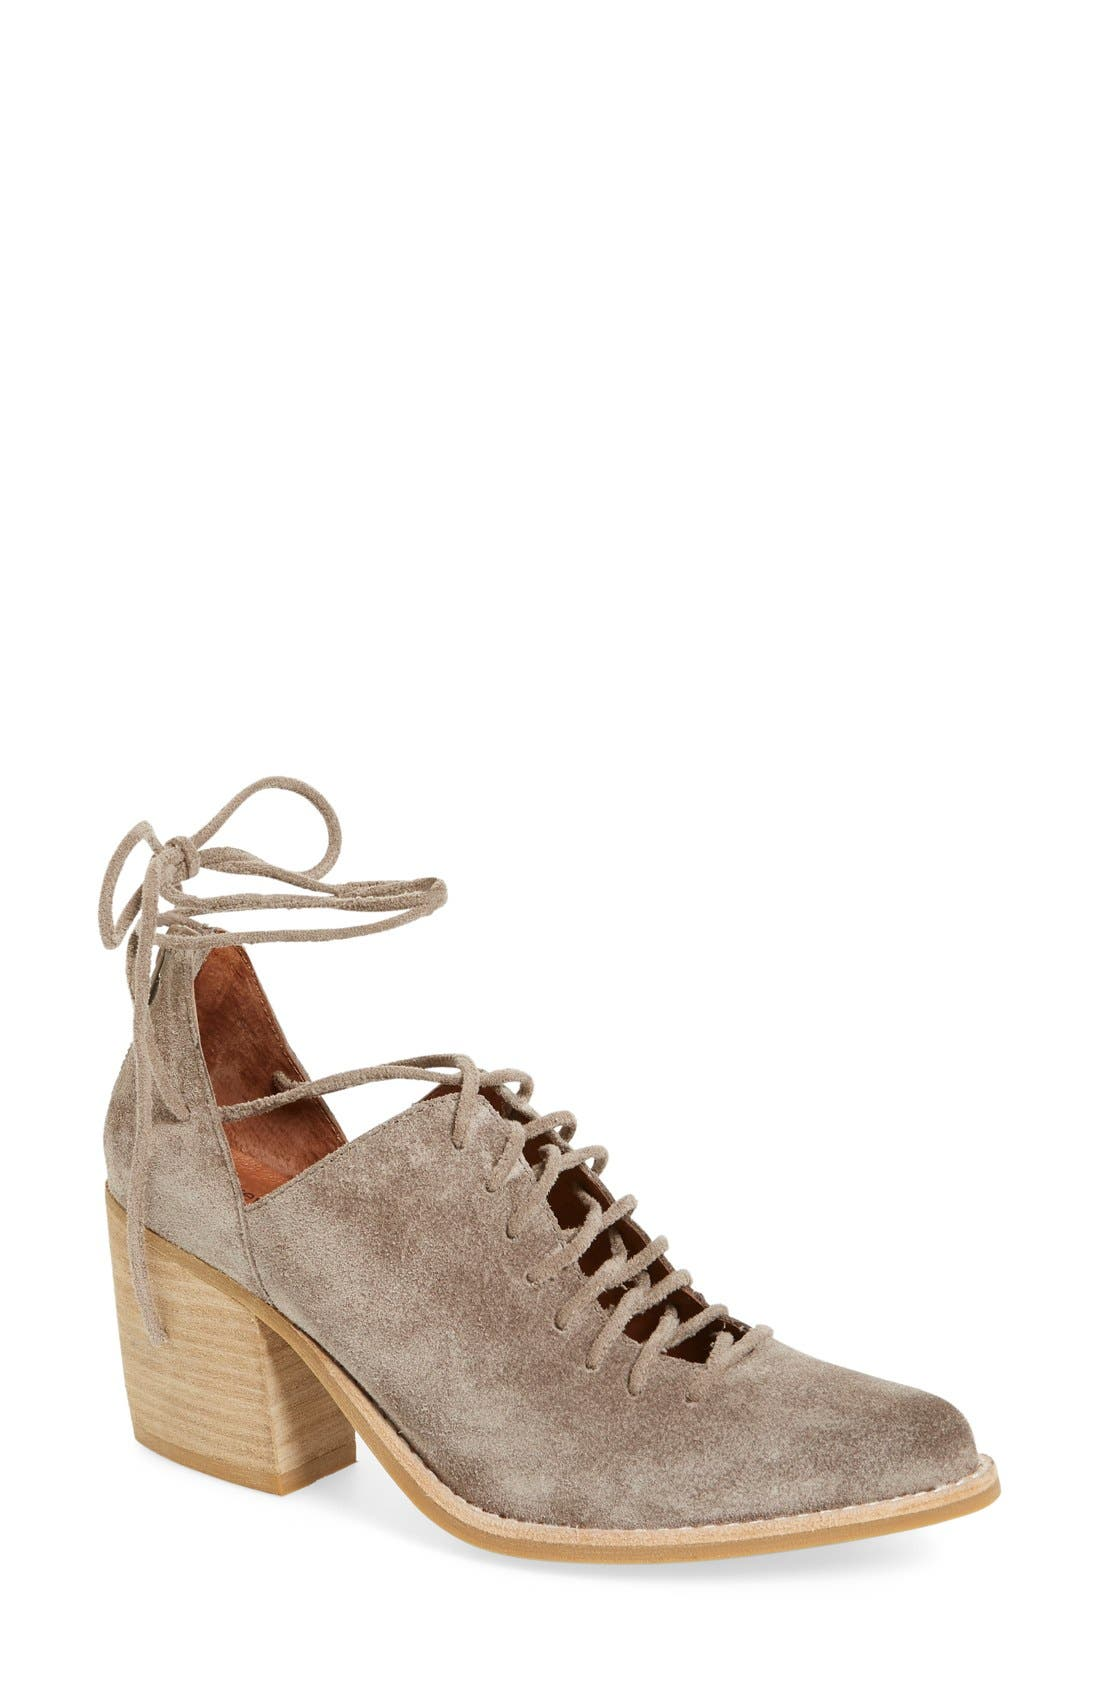 Main Image - Jeffrey Campbell 'Amata-Tie' Lace-Up Bootie (Women)